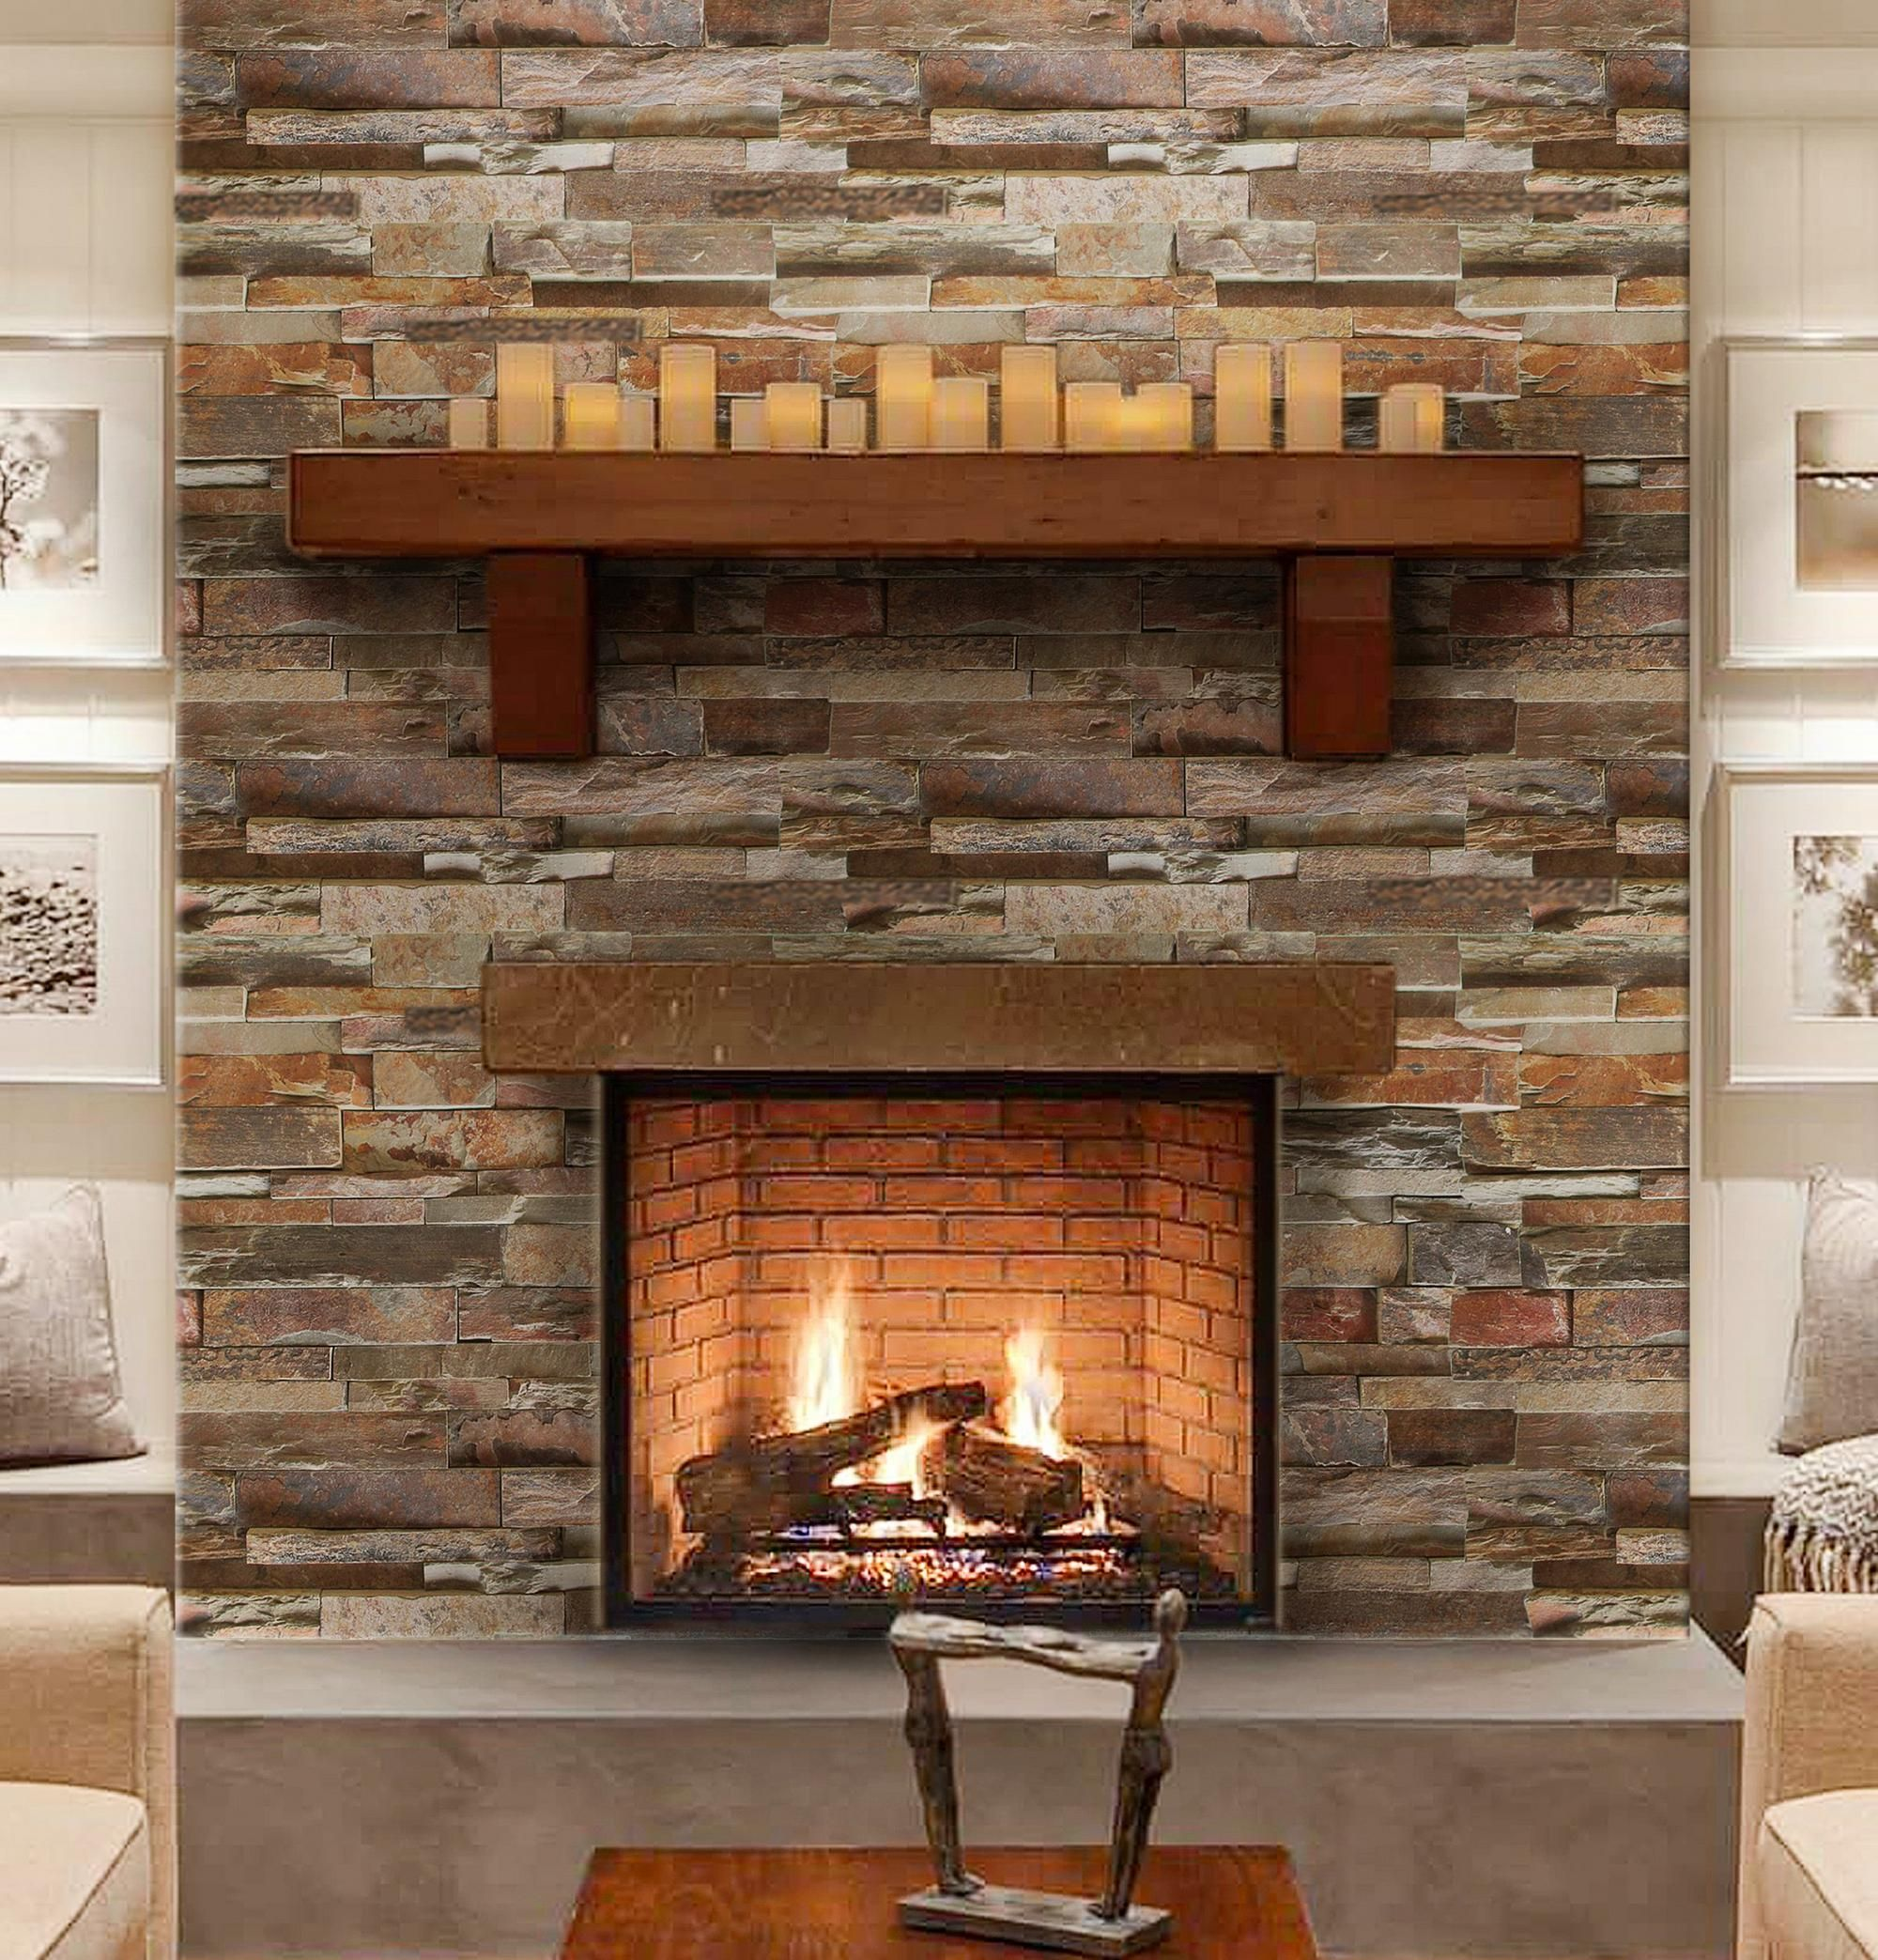 Earth Tone Accent Wall Colors Fireplace: Fireplace Facing, Fireplace